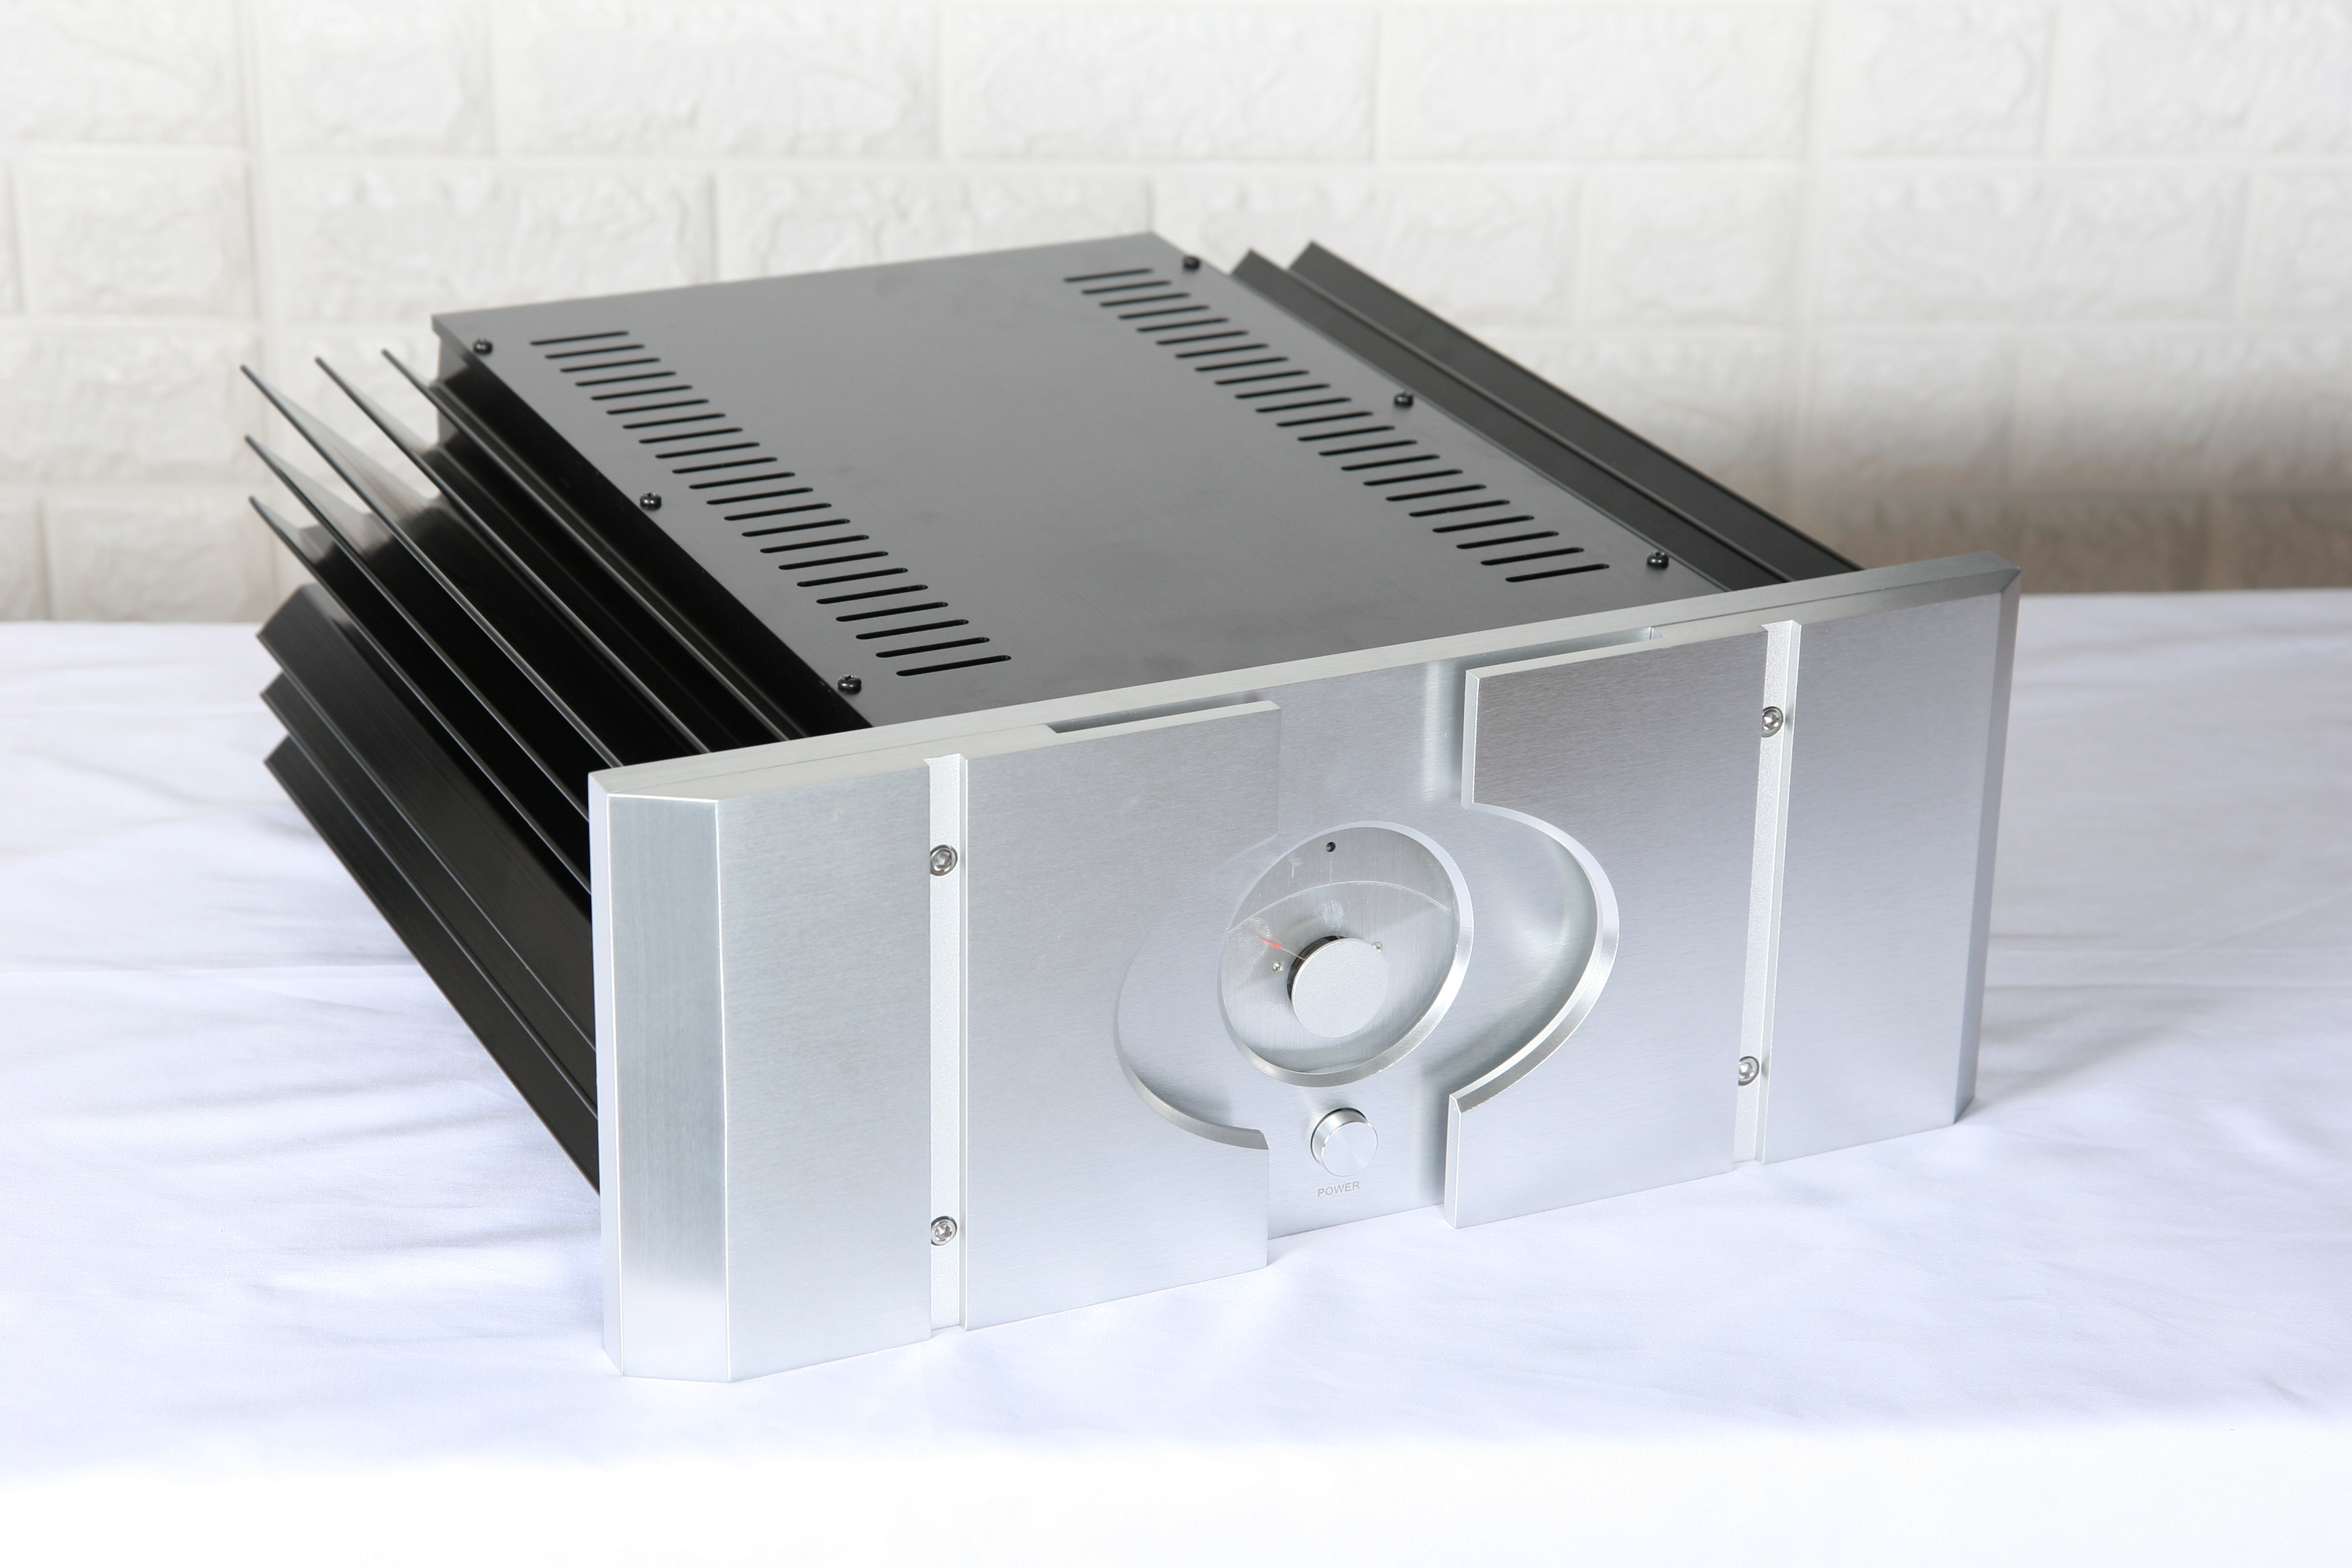 KYYSLB 430mm*430mm*170mm Amplifier Chassis Installation PASS XA 30.5 All Aluminum Large Power Amplifier Chassis DIY Housing|Amplifier|Consumer Electronics - title=